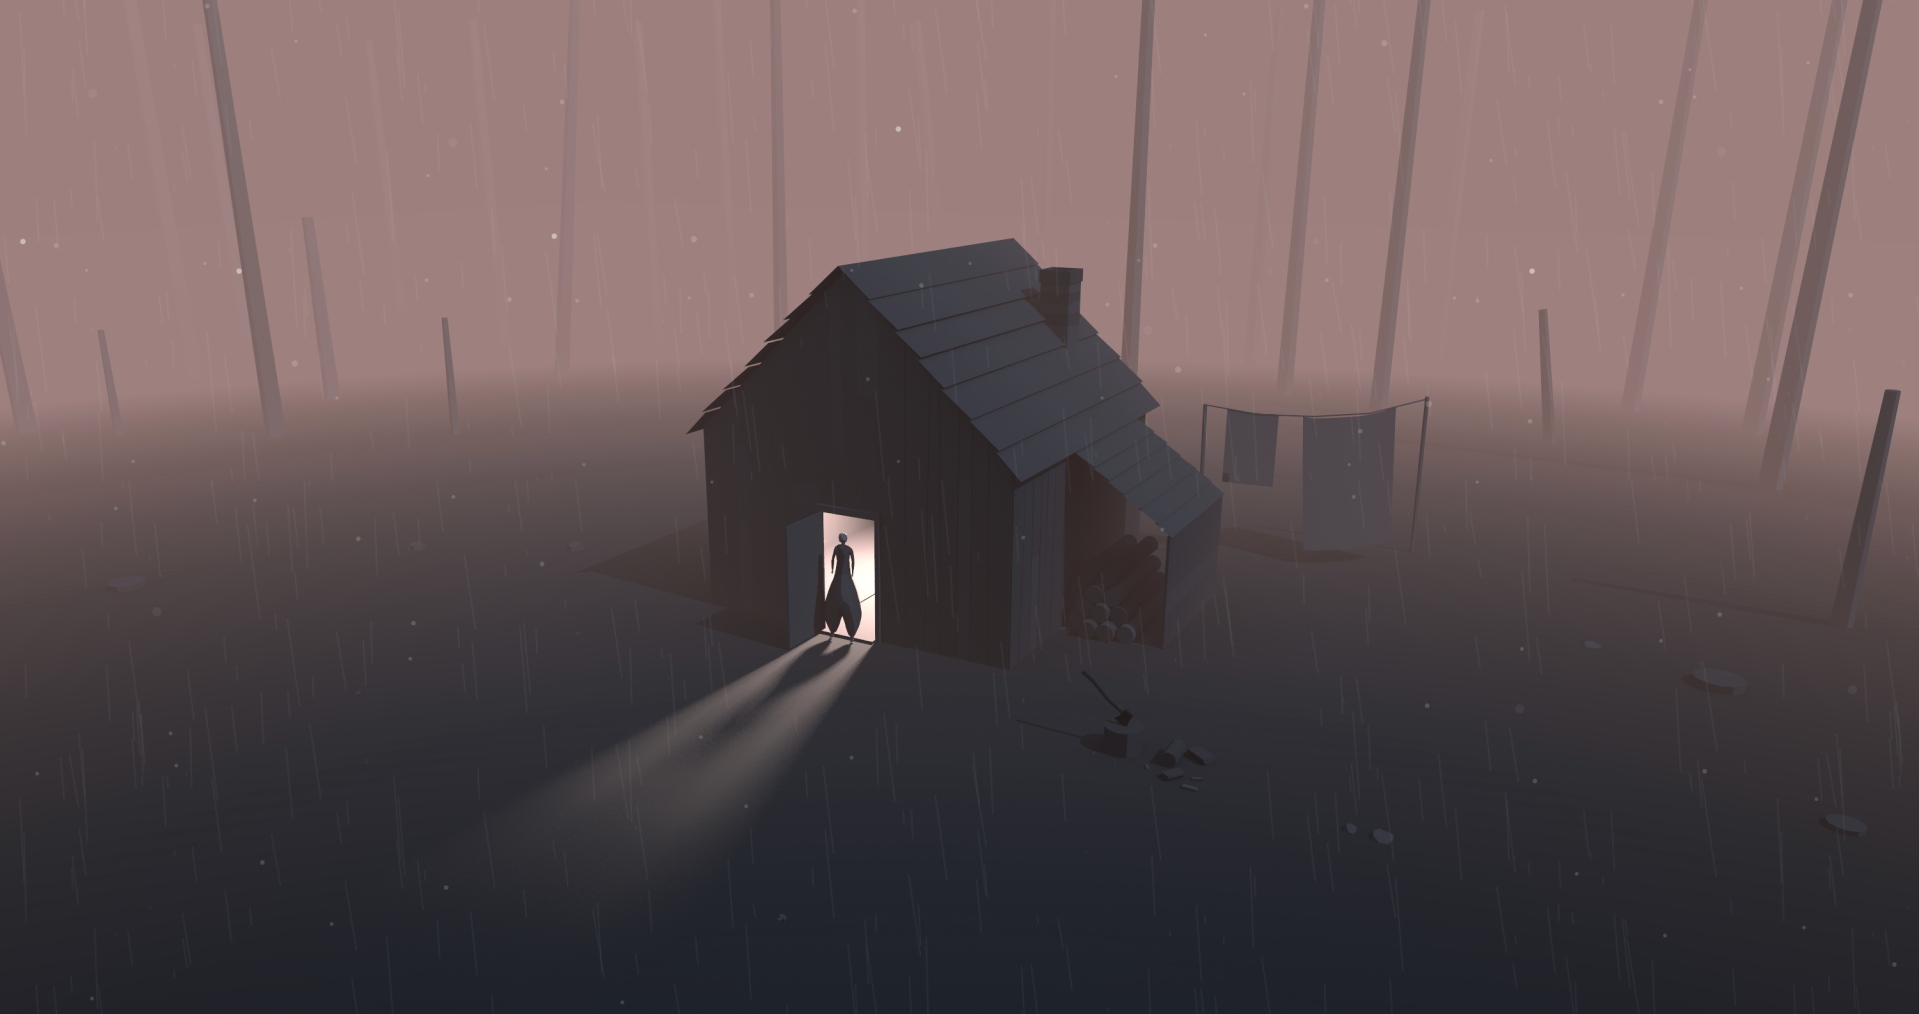 Illustration of a small house in the forest with a person standing illuminated in the open doorway